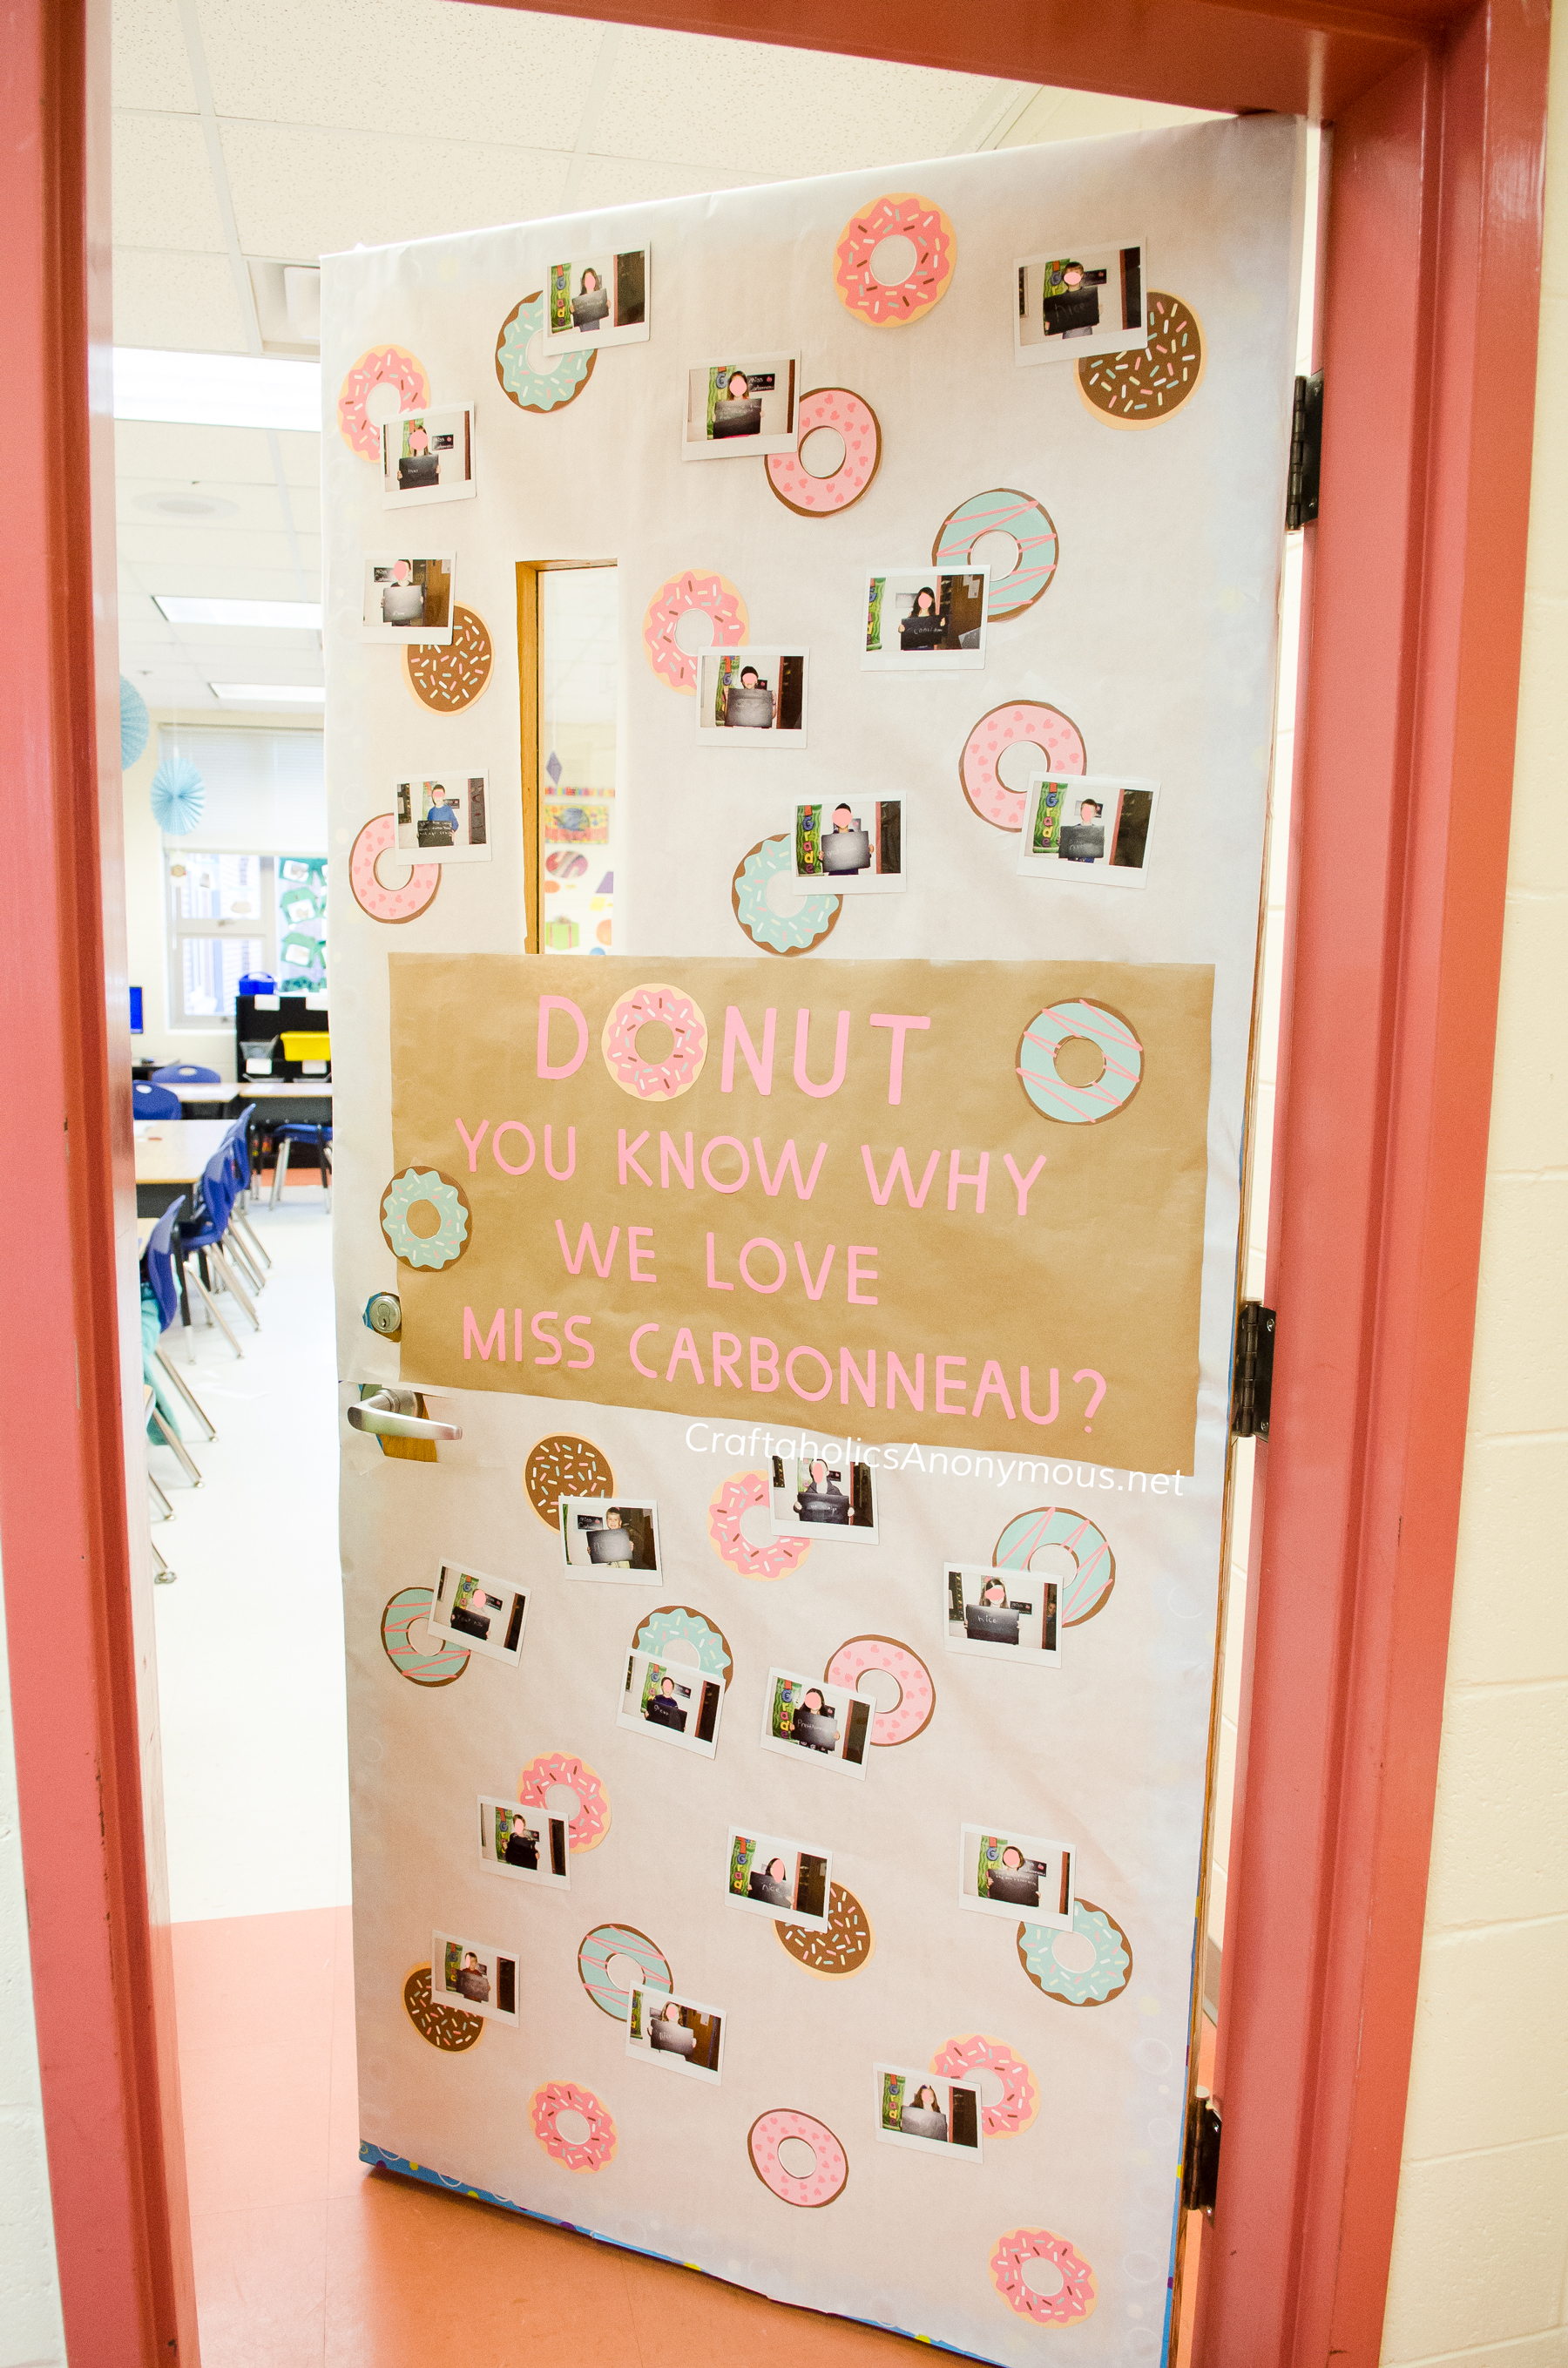 image about Donut Teacher Appreciation Printable named Craftaholics Anonymous® Trainer Appreciation Doorway Strategy